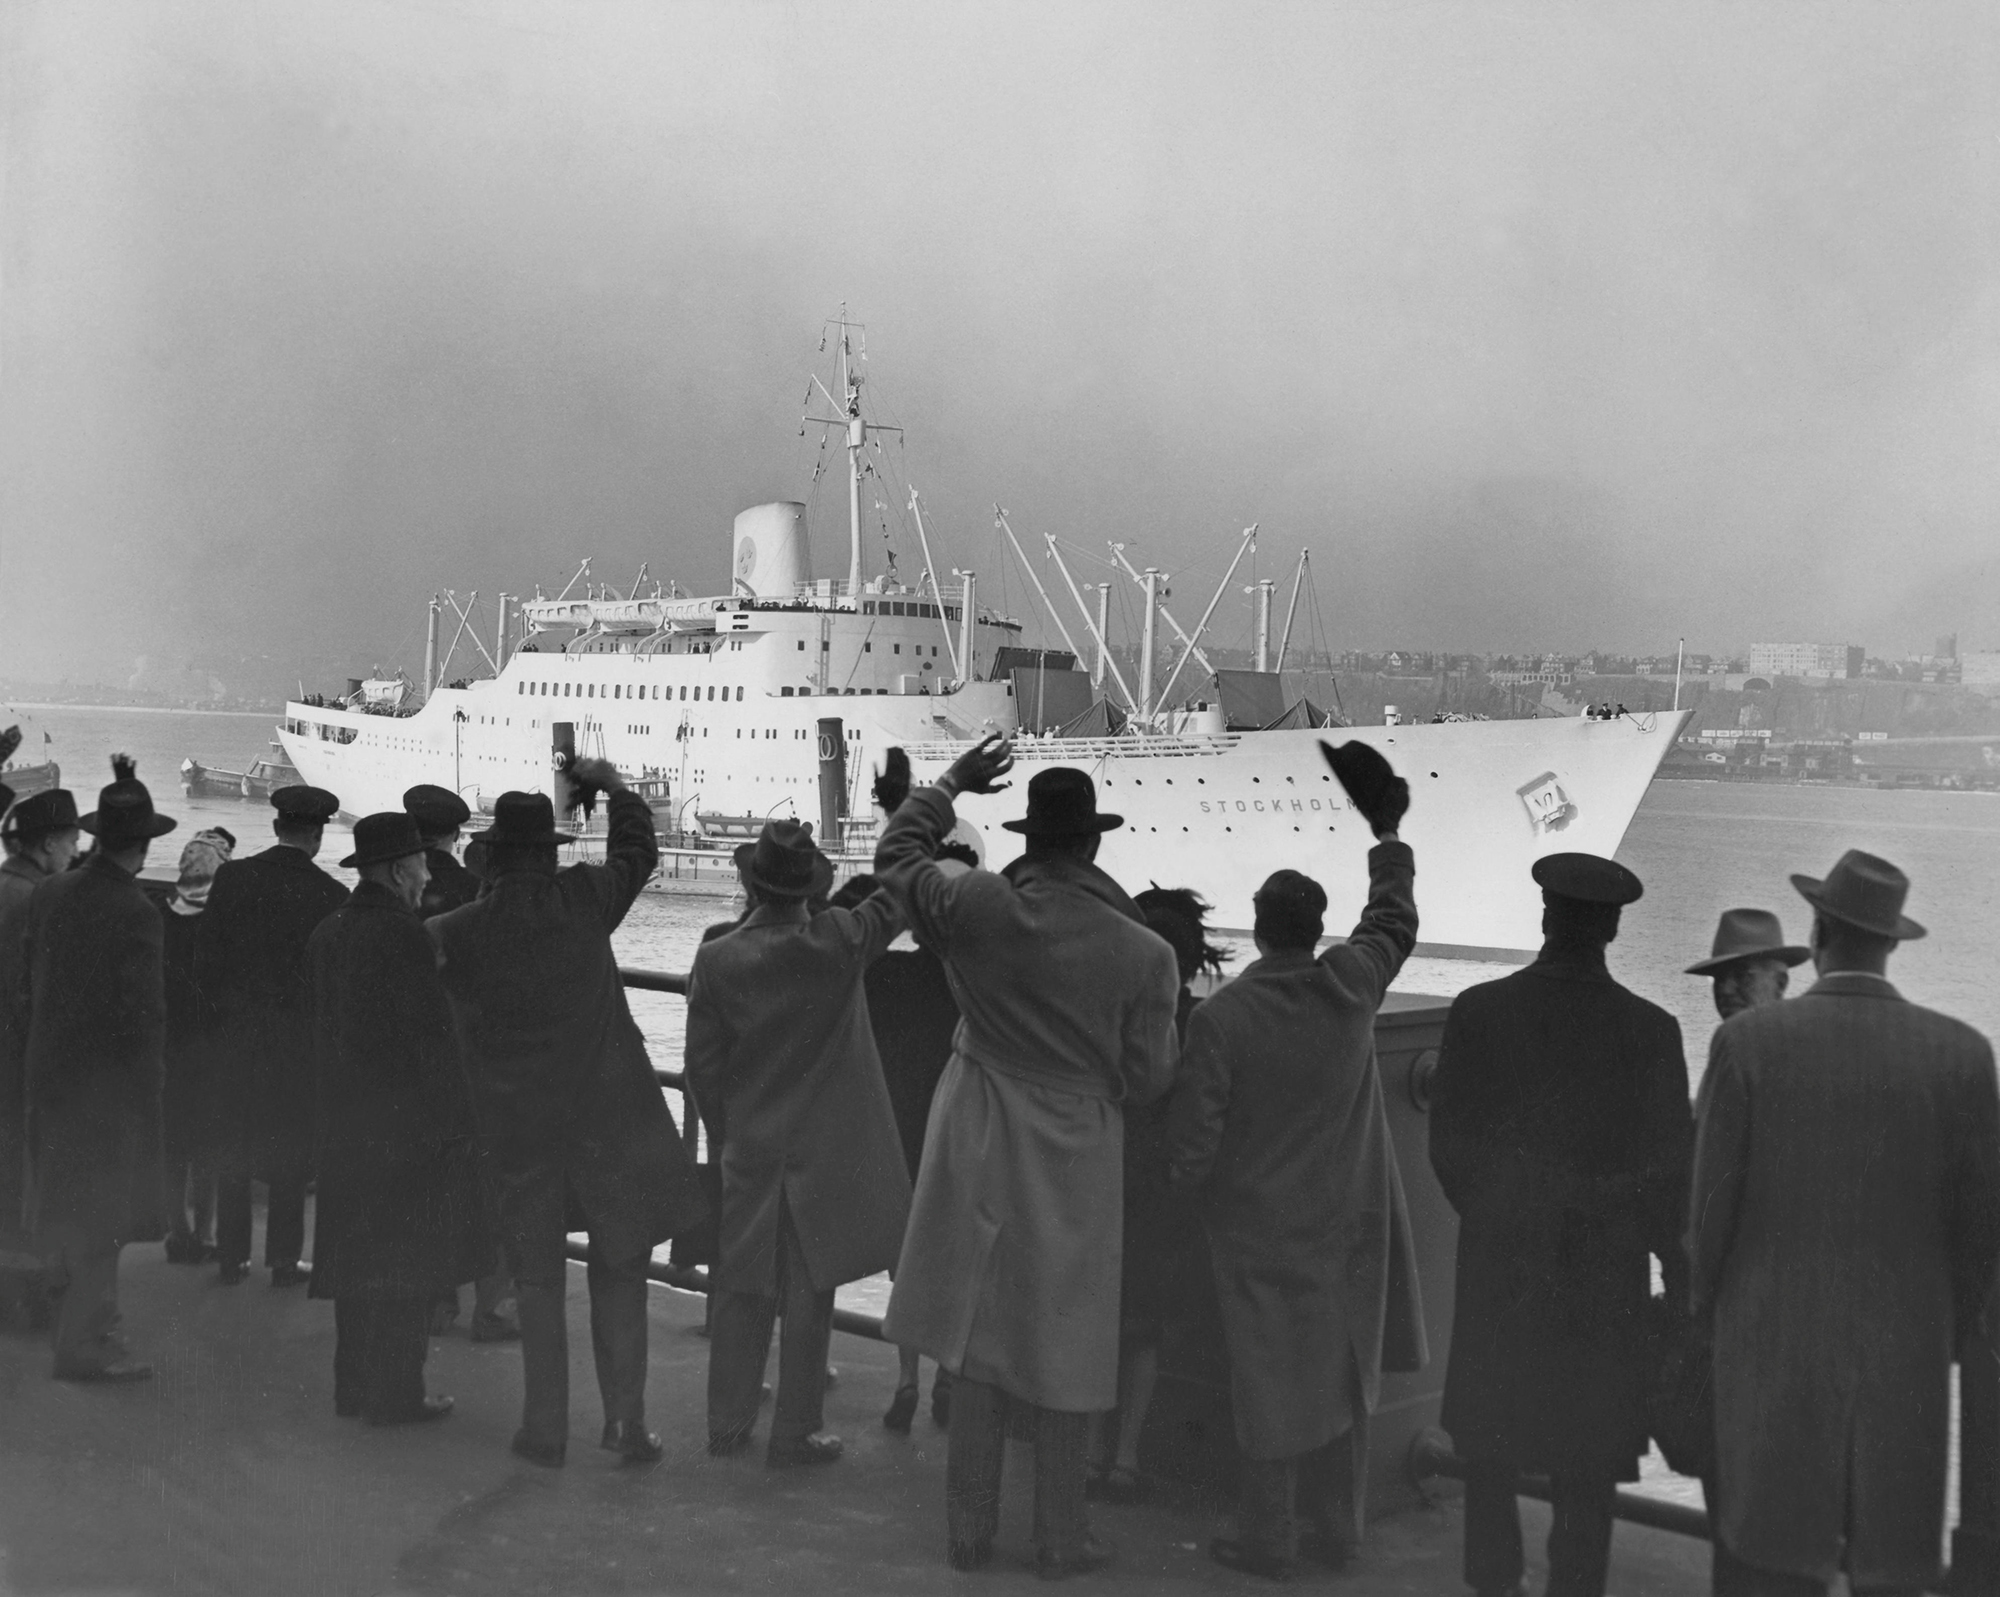 a group of people waves at a cruise ship